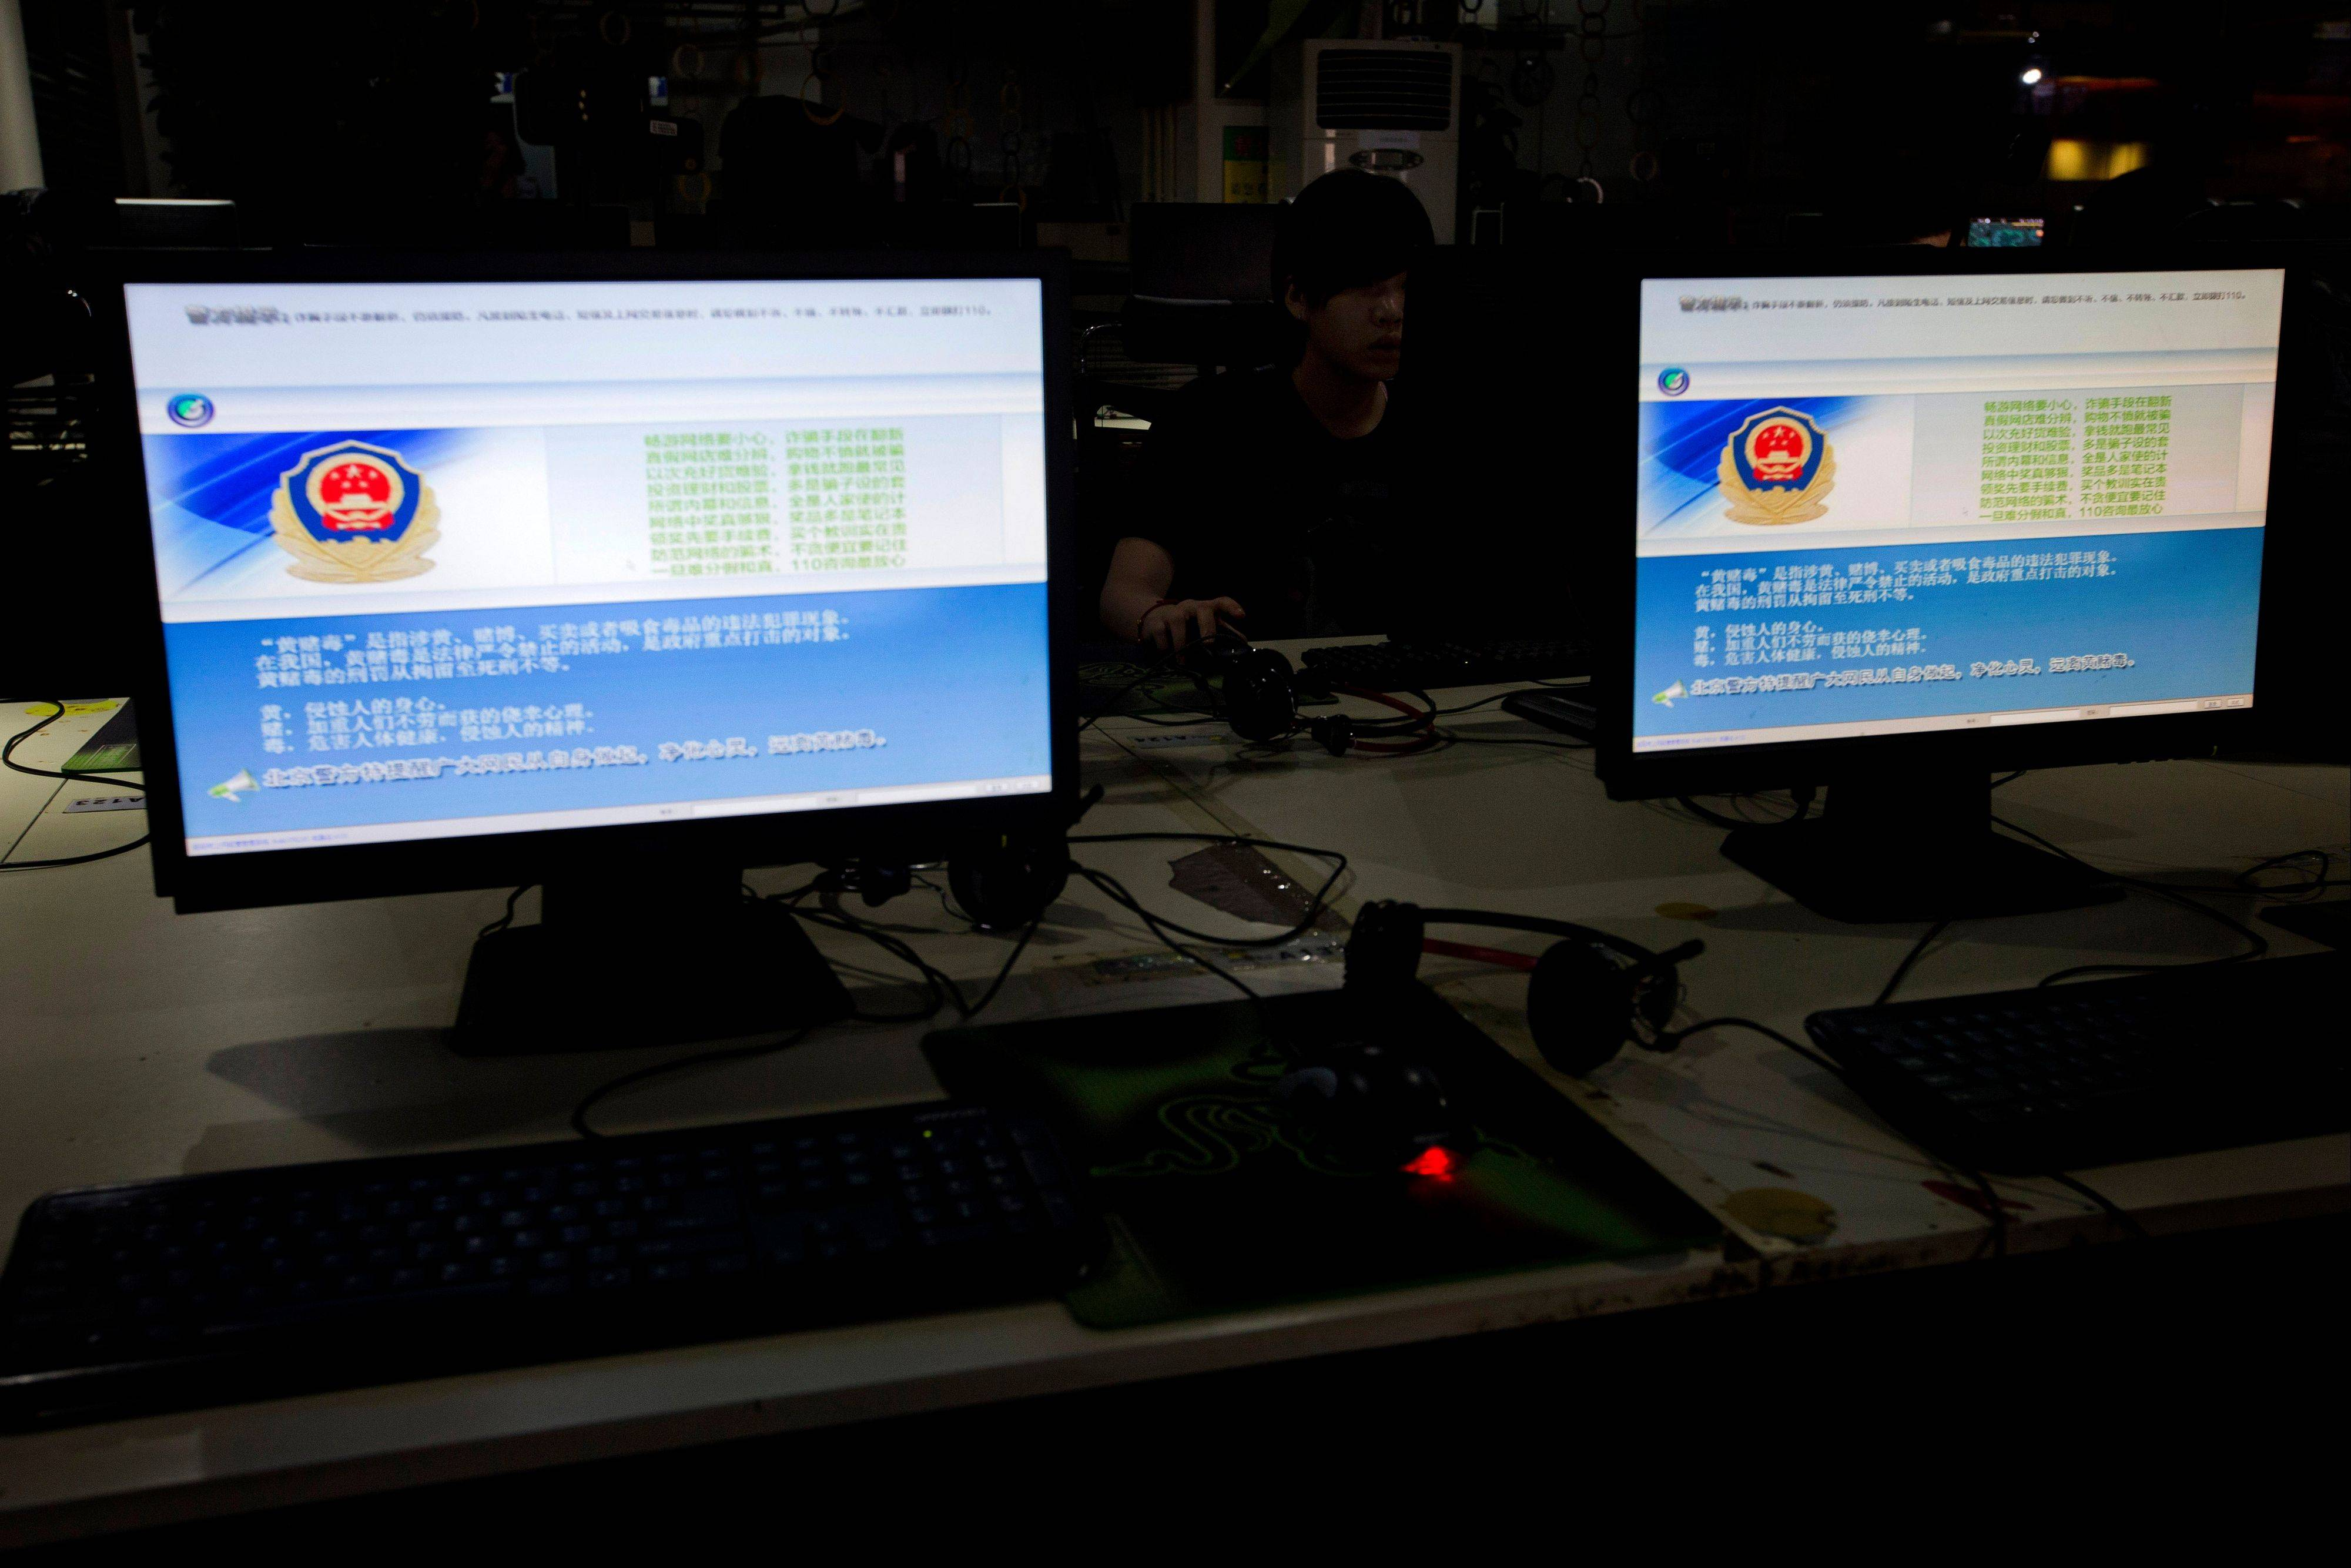 A computer user sits near displays with a message from the Chinese police on the proper use of the Internet at an Internet cafe in Beijing. Many famous Chinese -- from pop stars to scholars, journalists to business tycoons -- have amassed substantial online followings, and these larger-than-life personal